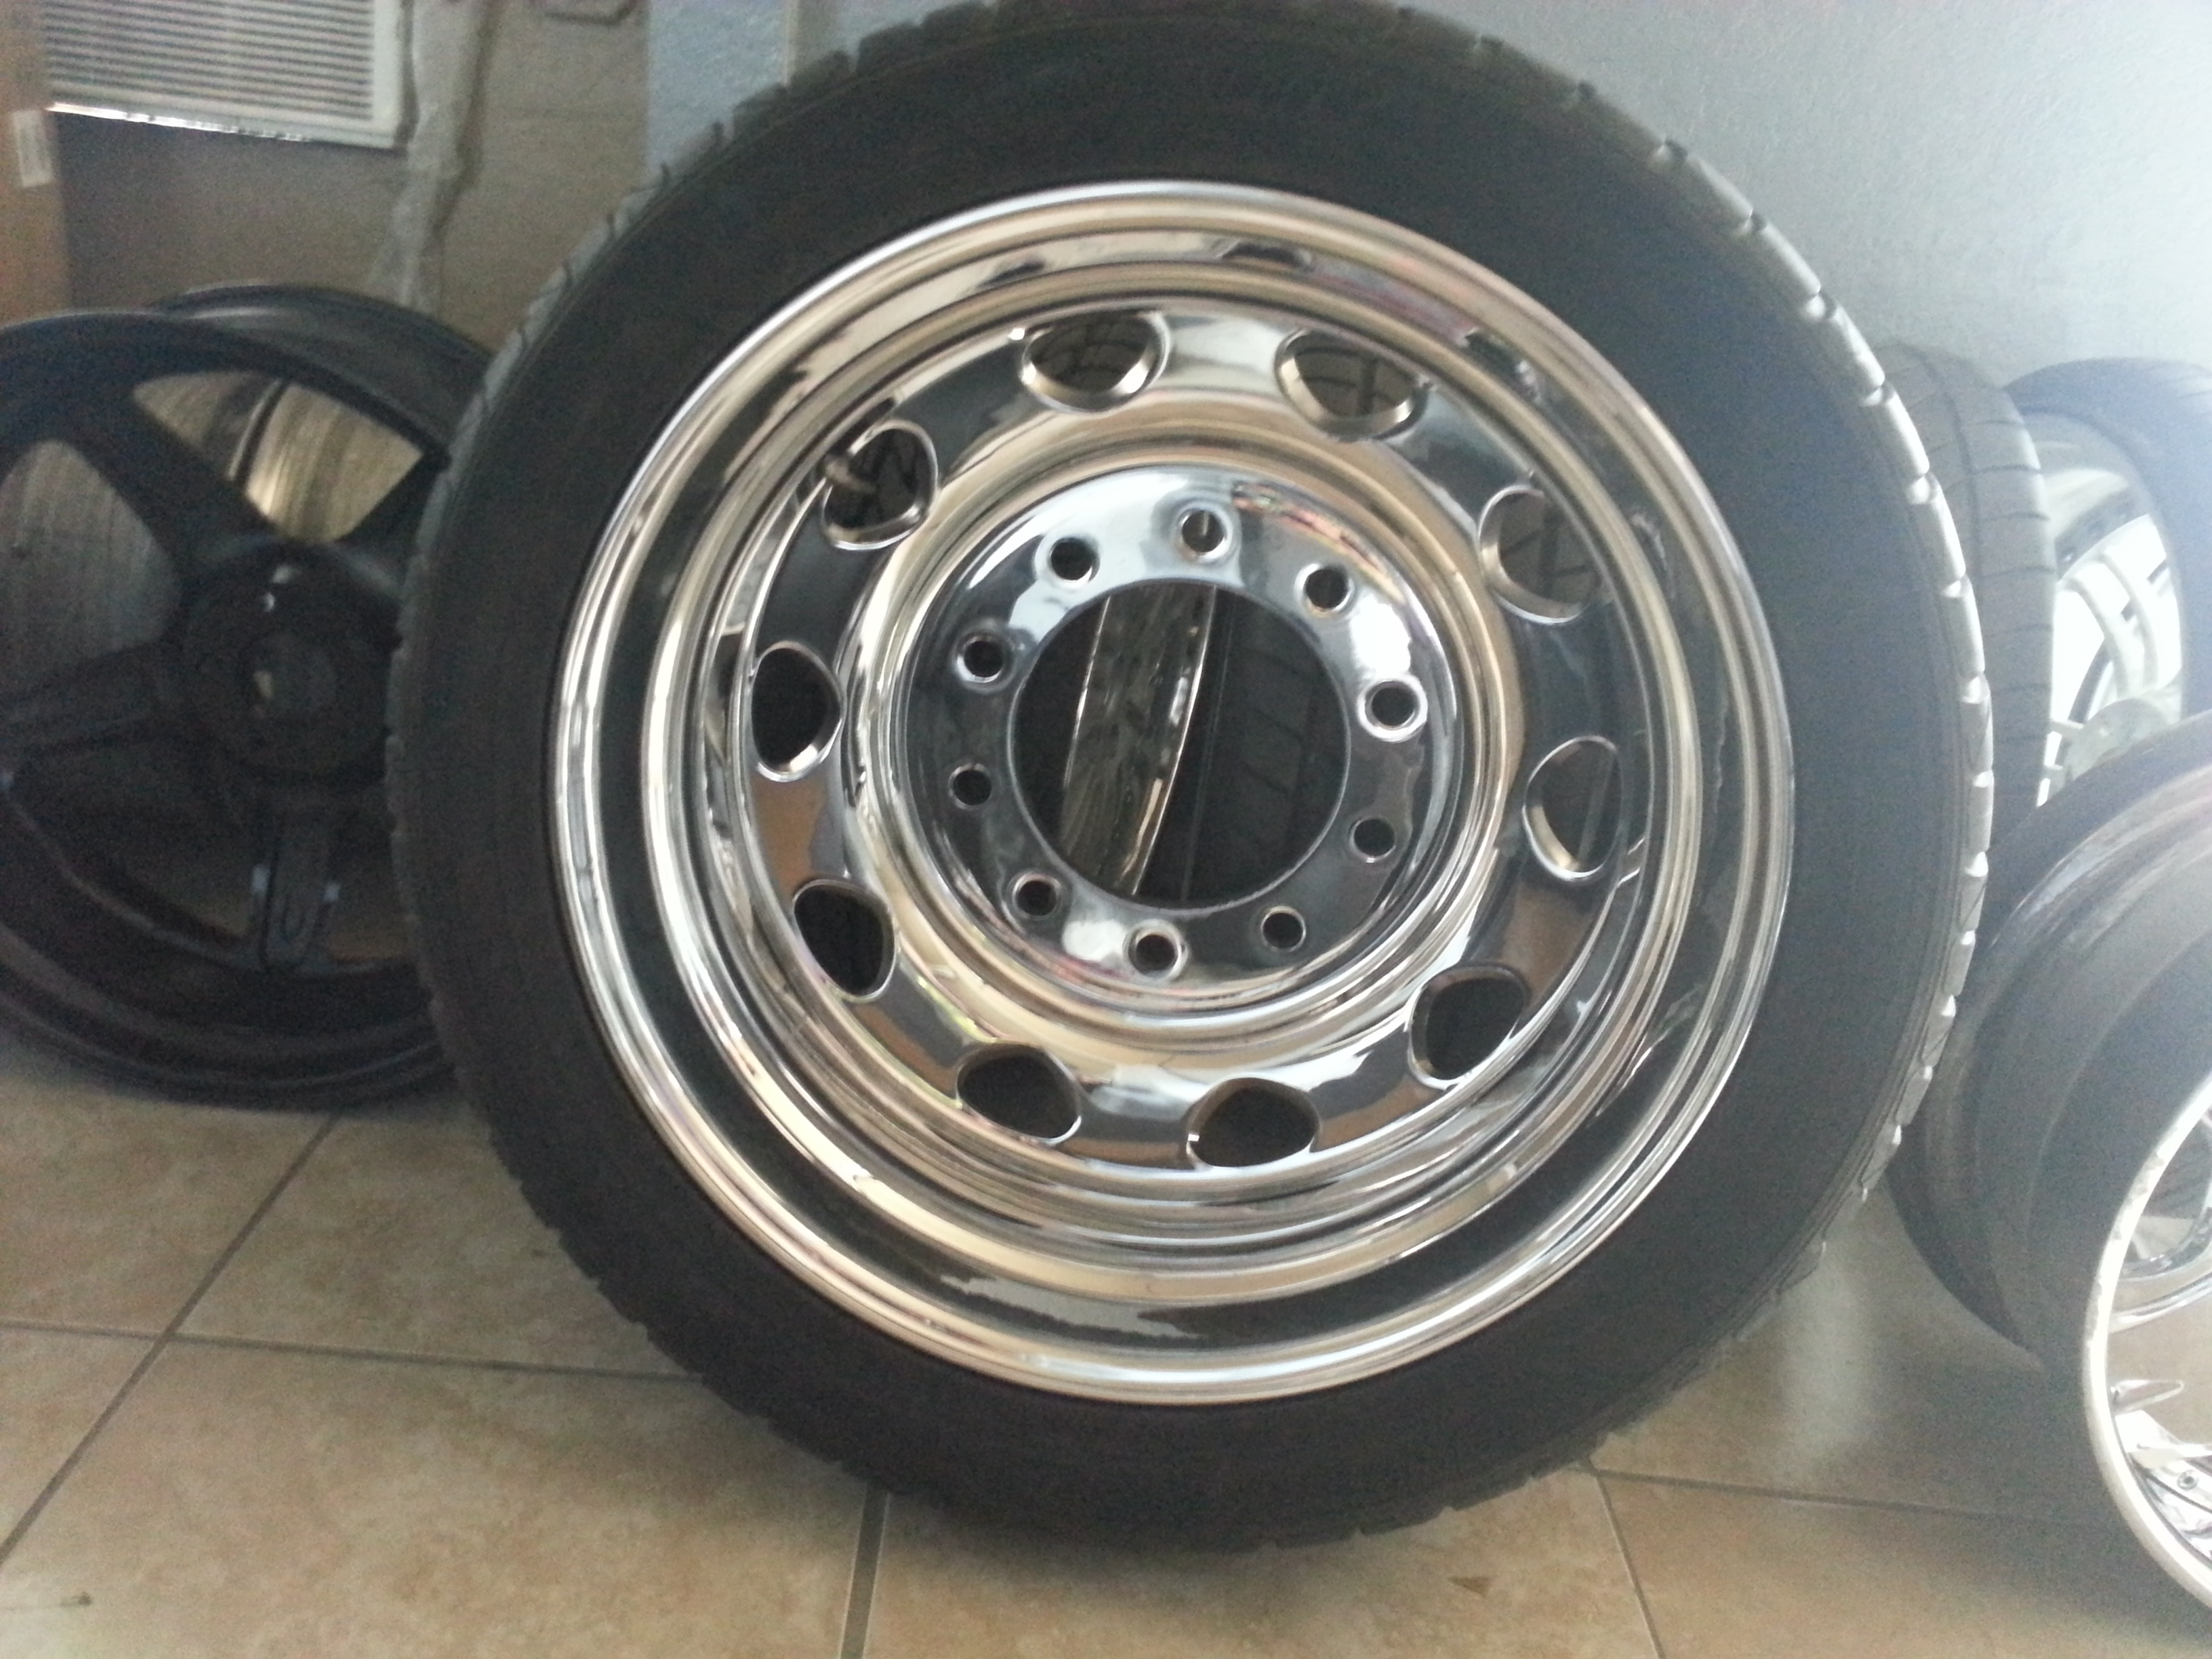 24 inch Dully Wheel Repaired and Repolished